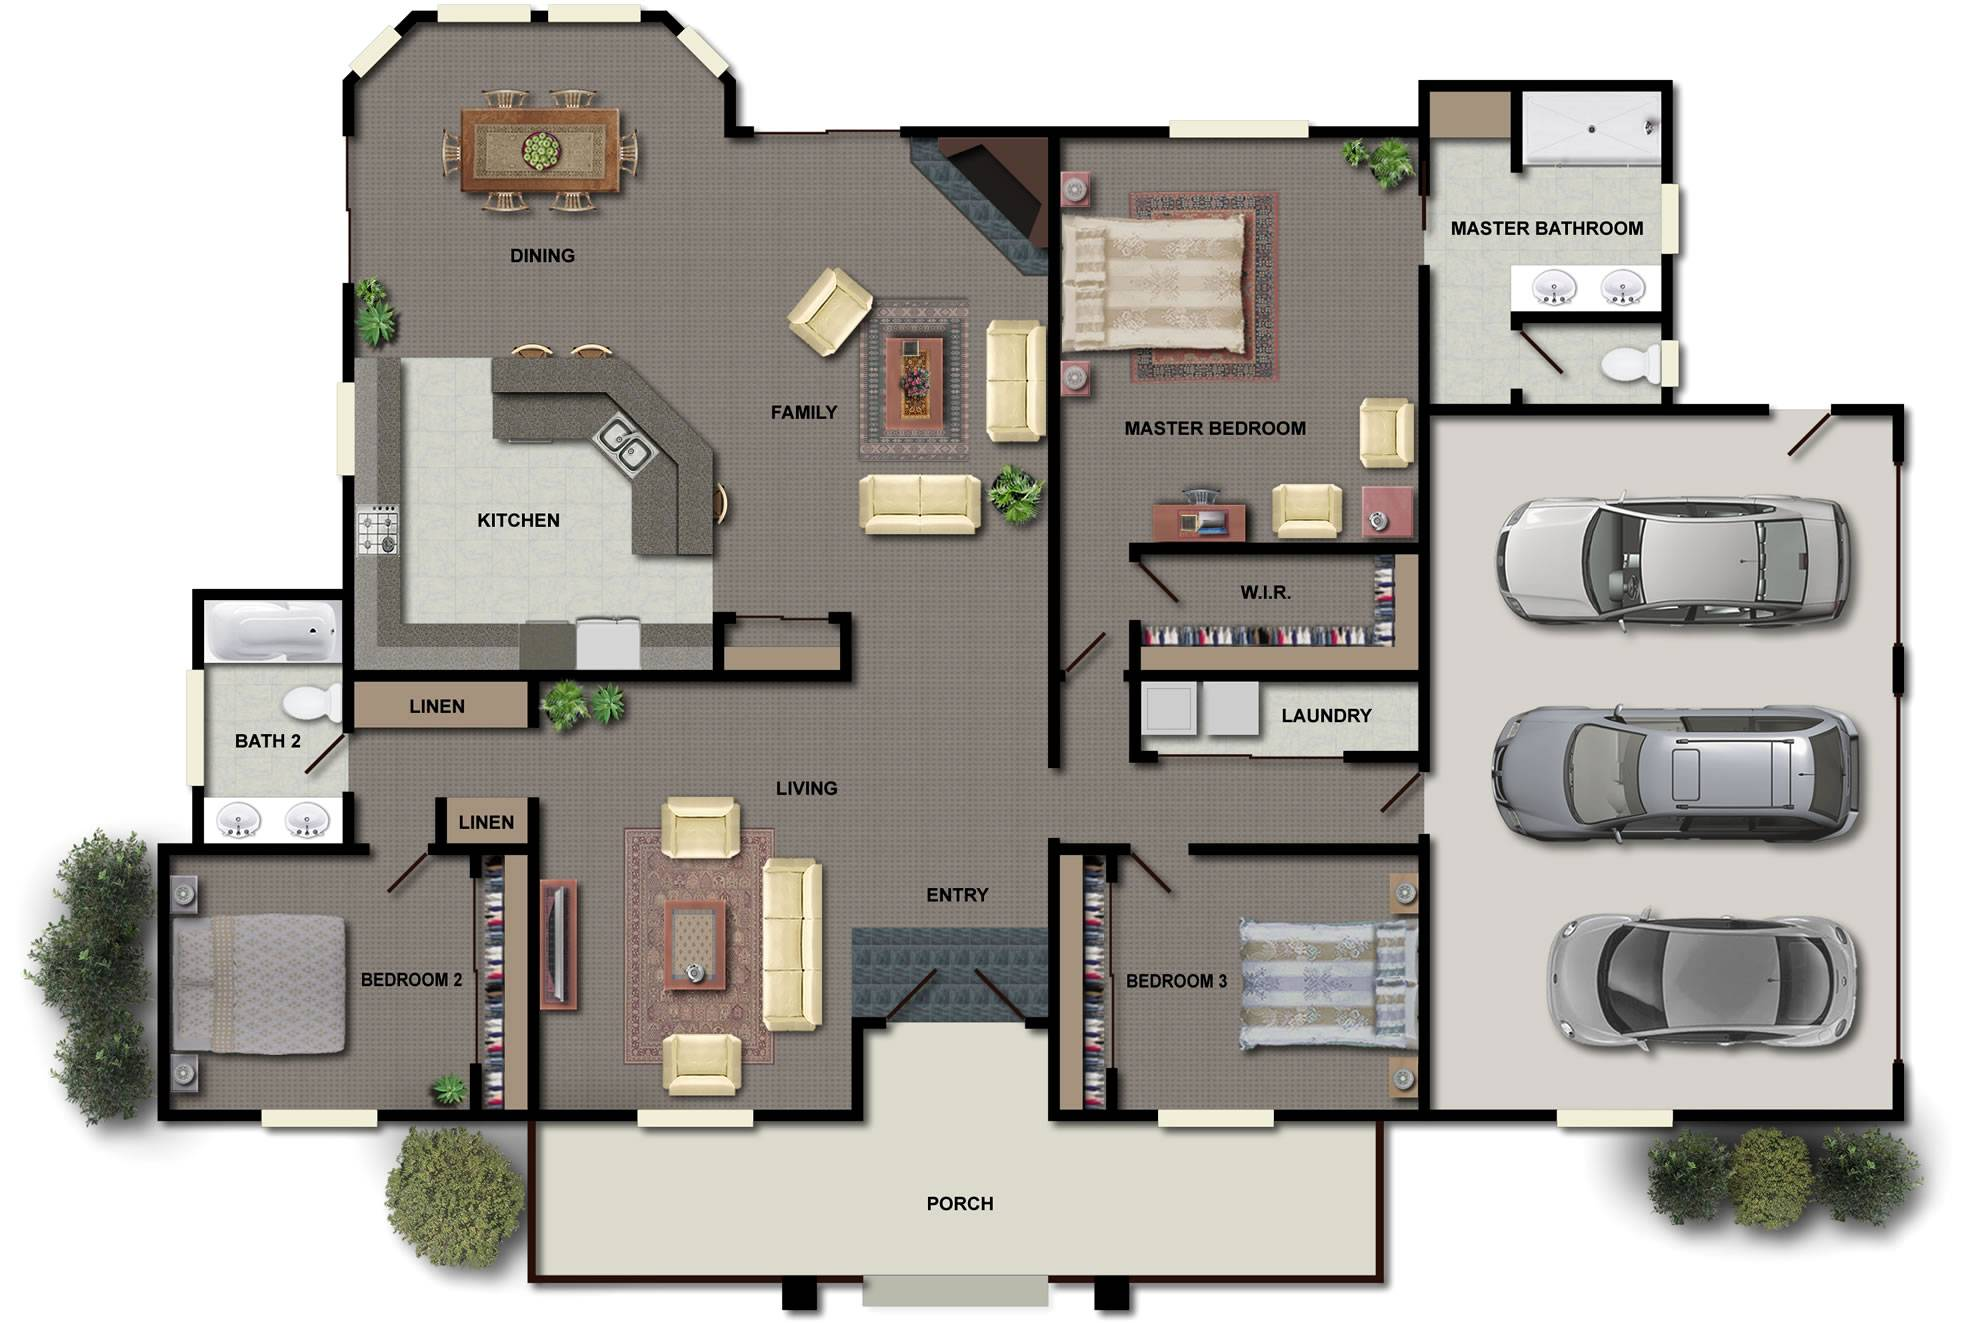 small one story house plans pyihome com 28 small one story house plans for classy entertainment space